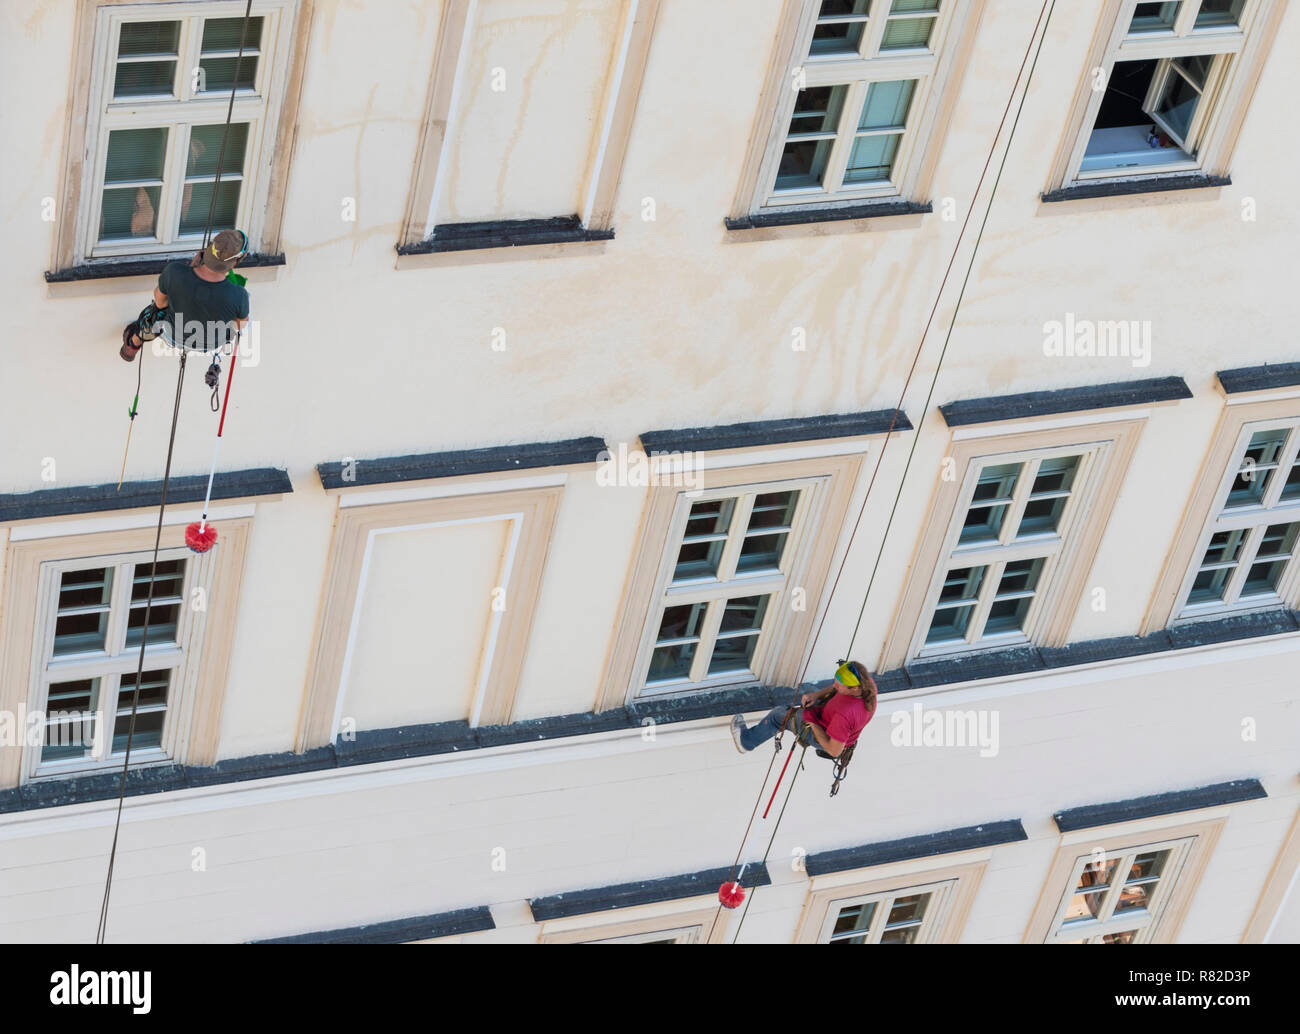 high rise window cleaners abseiling window cleaners working abseiling window cleaning Stock Photo